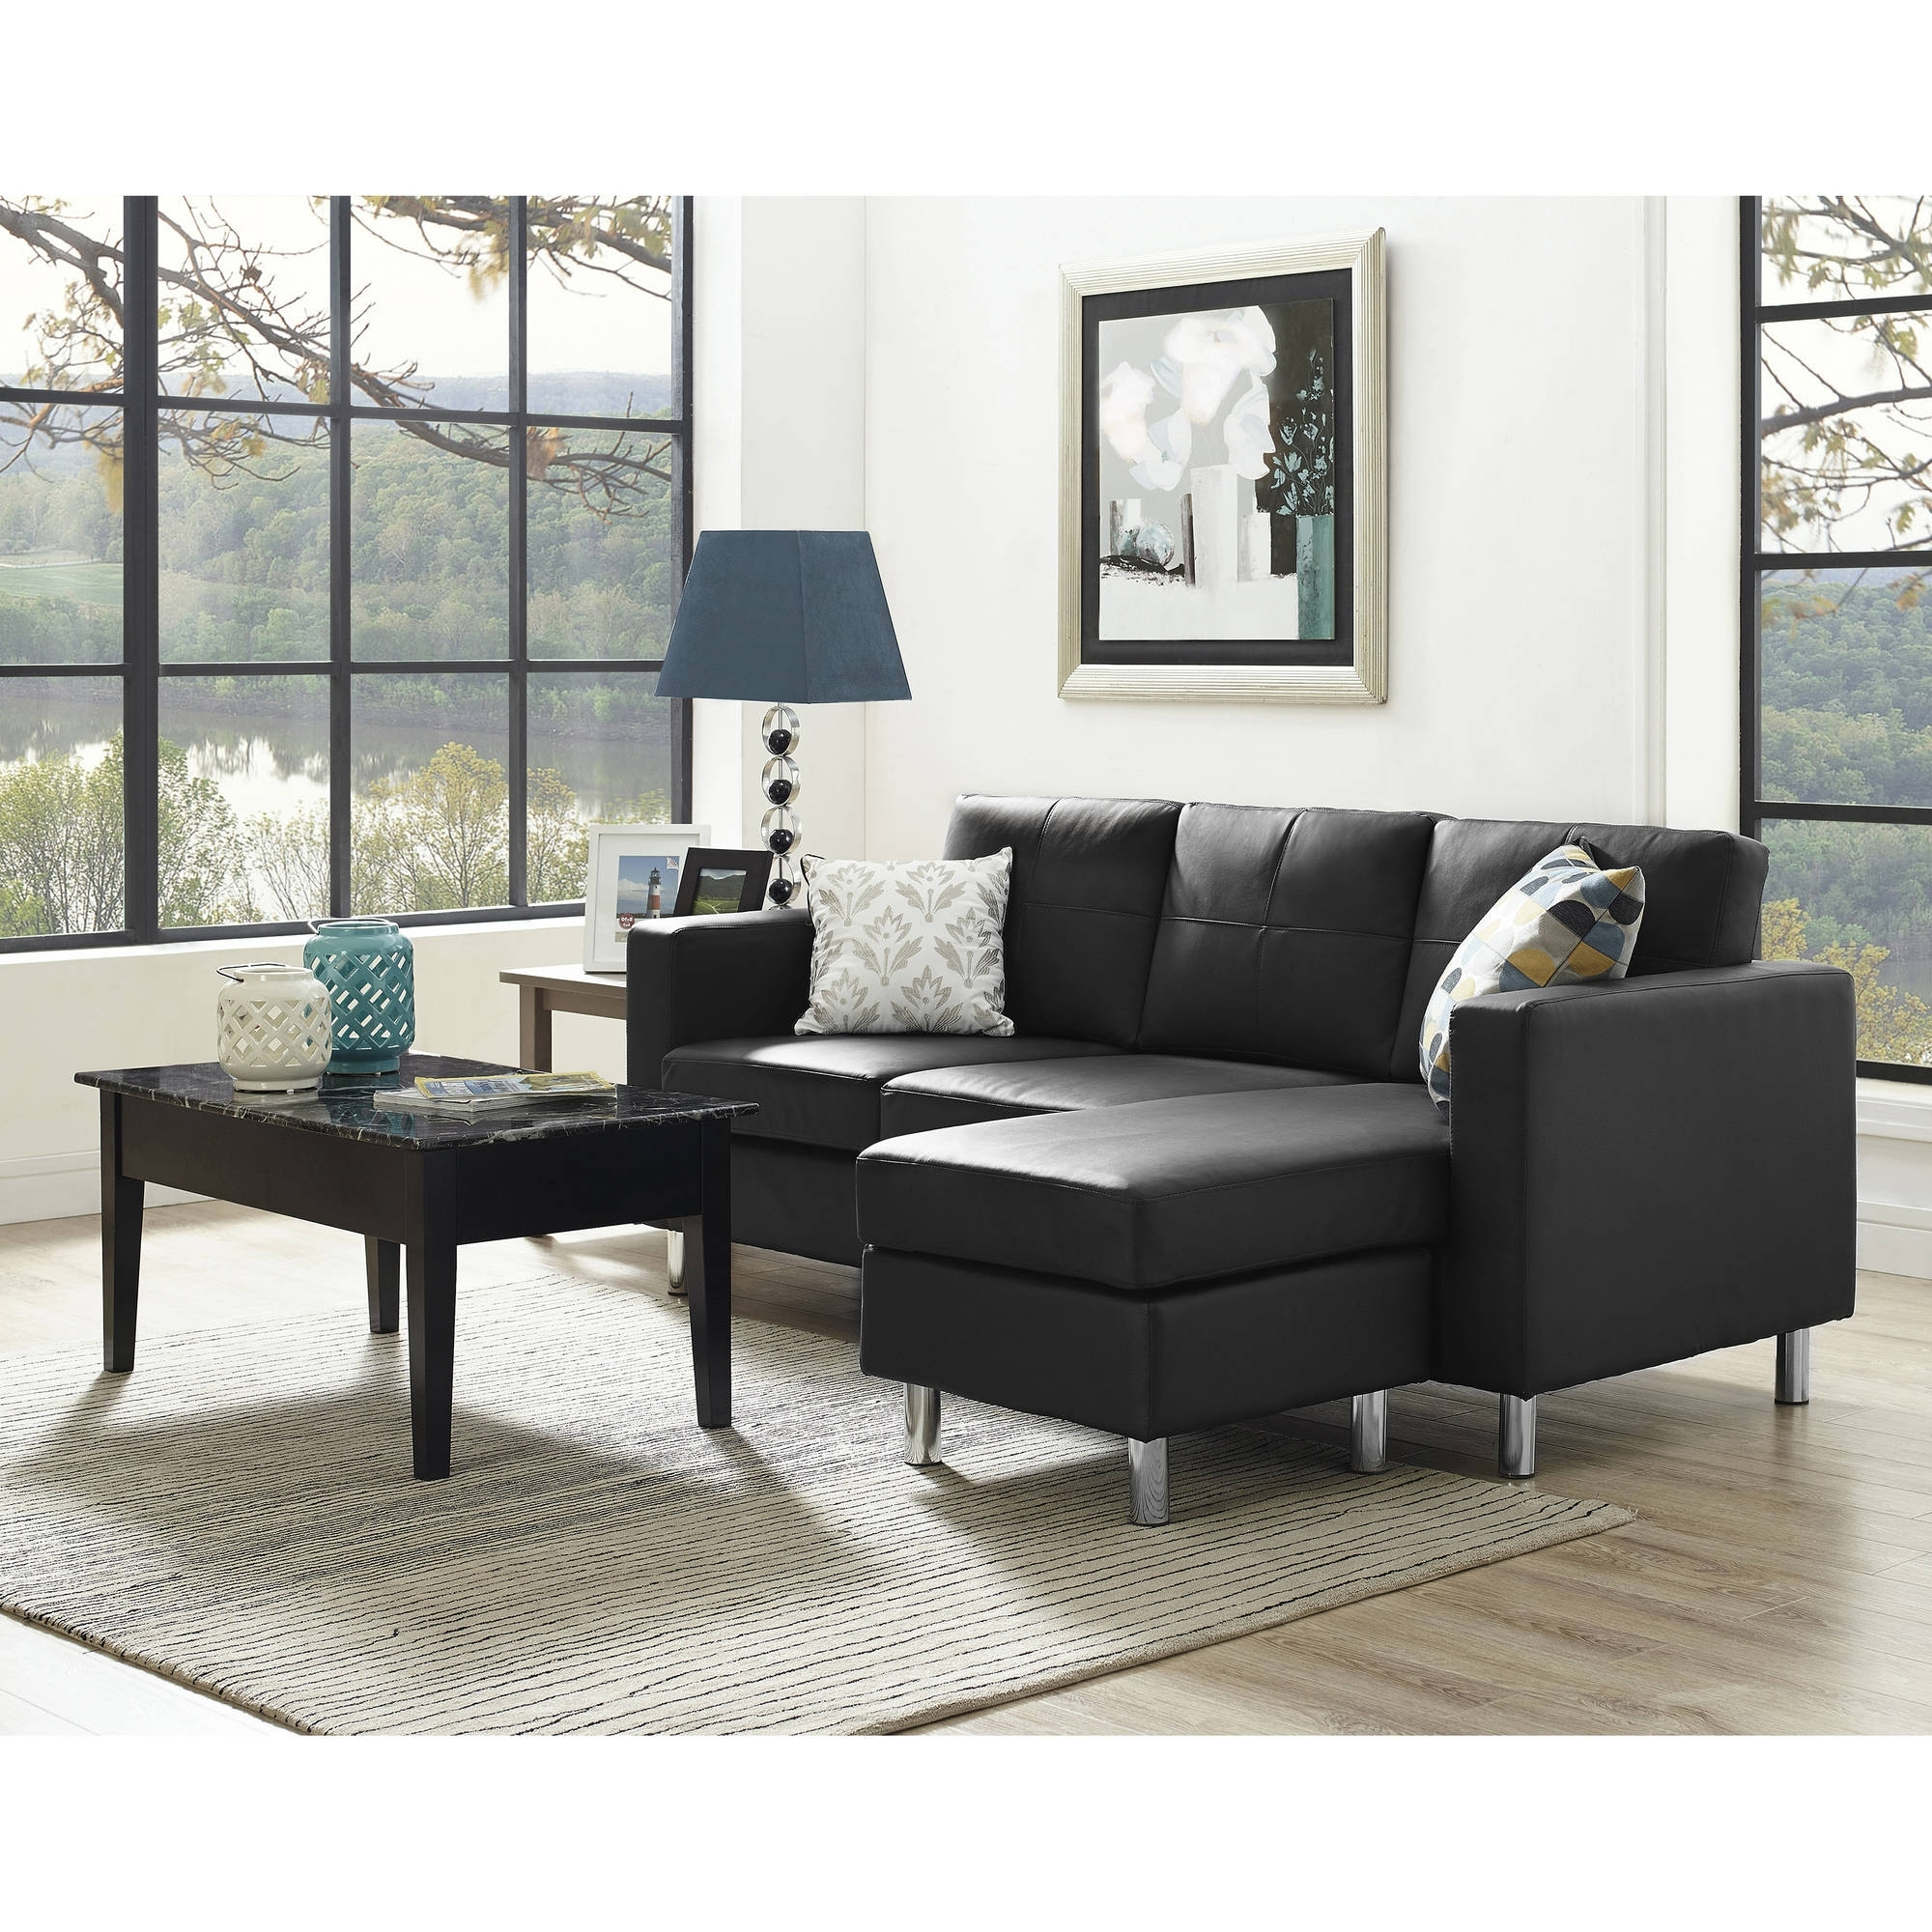 Most Up To Date Sectional Sofas With Recliners For Small Spaces Regarding Furniture & Sofa: Perfect Small Spaces Configurable Sectional Sofa (View 10 of 20)